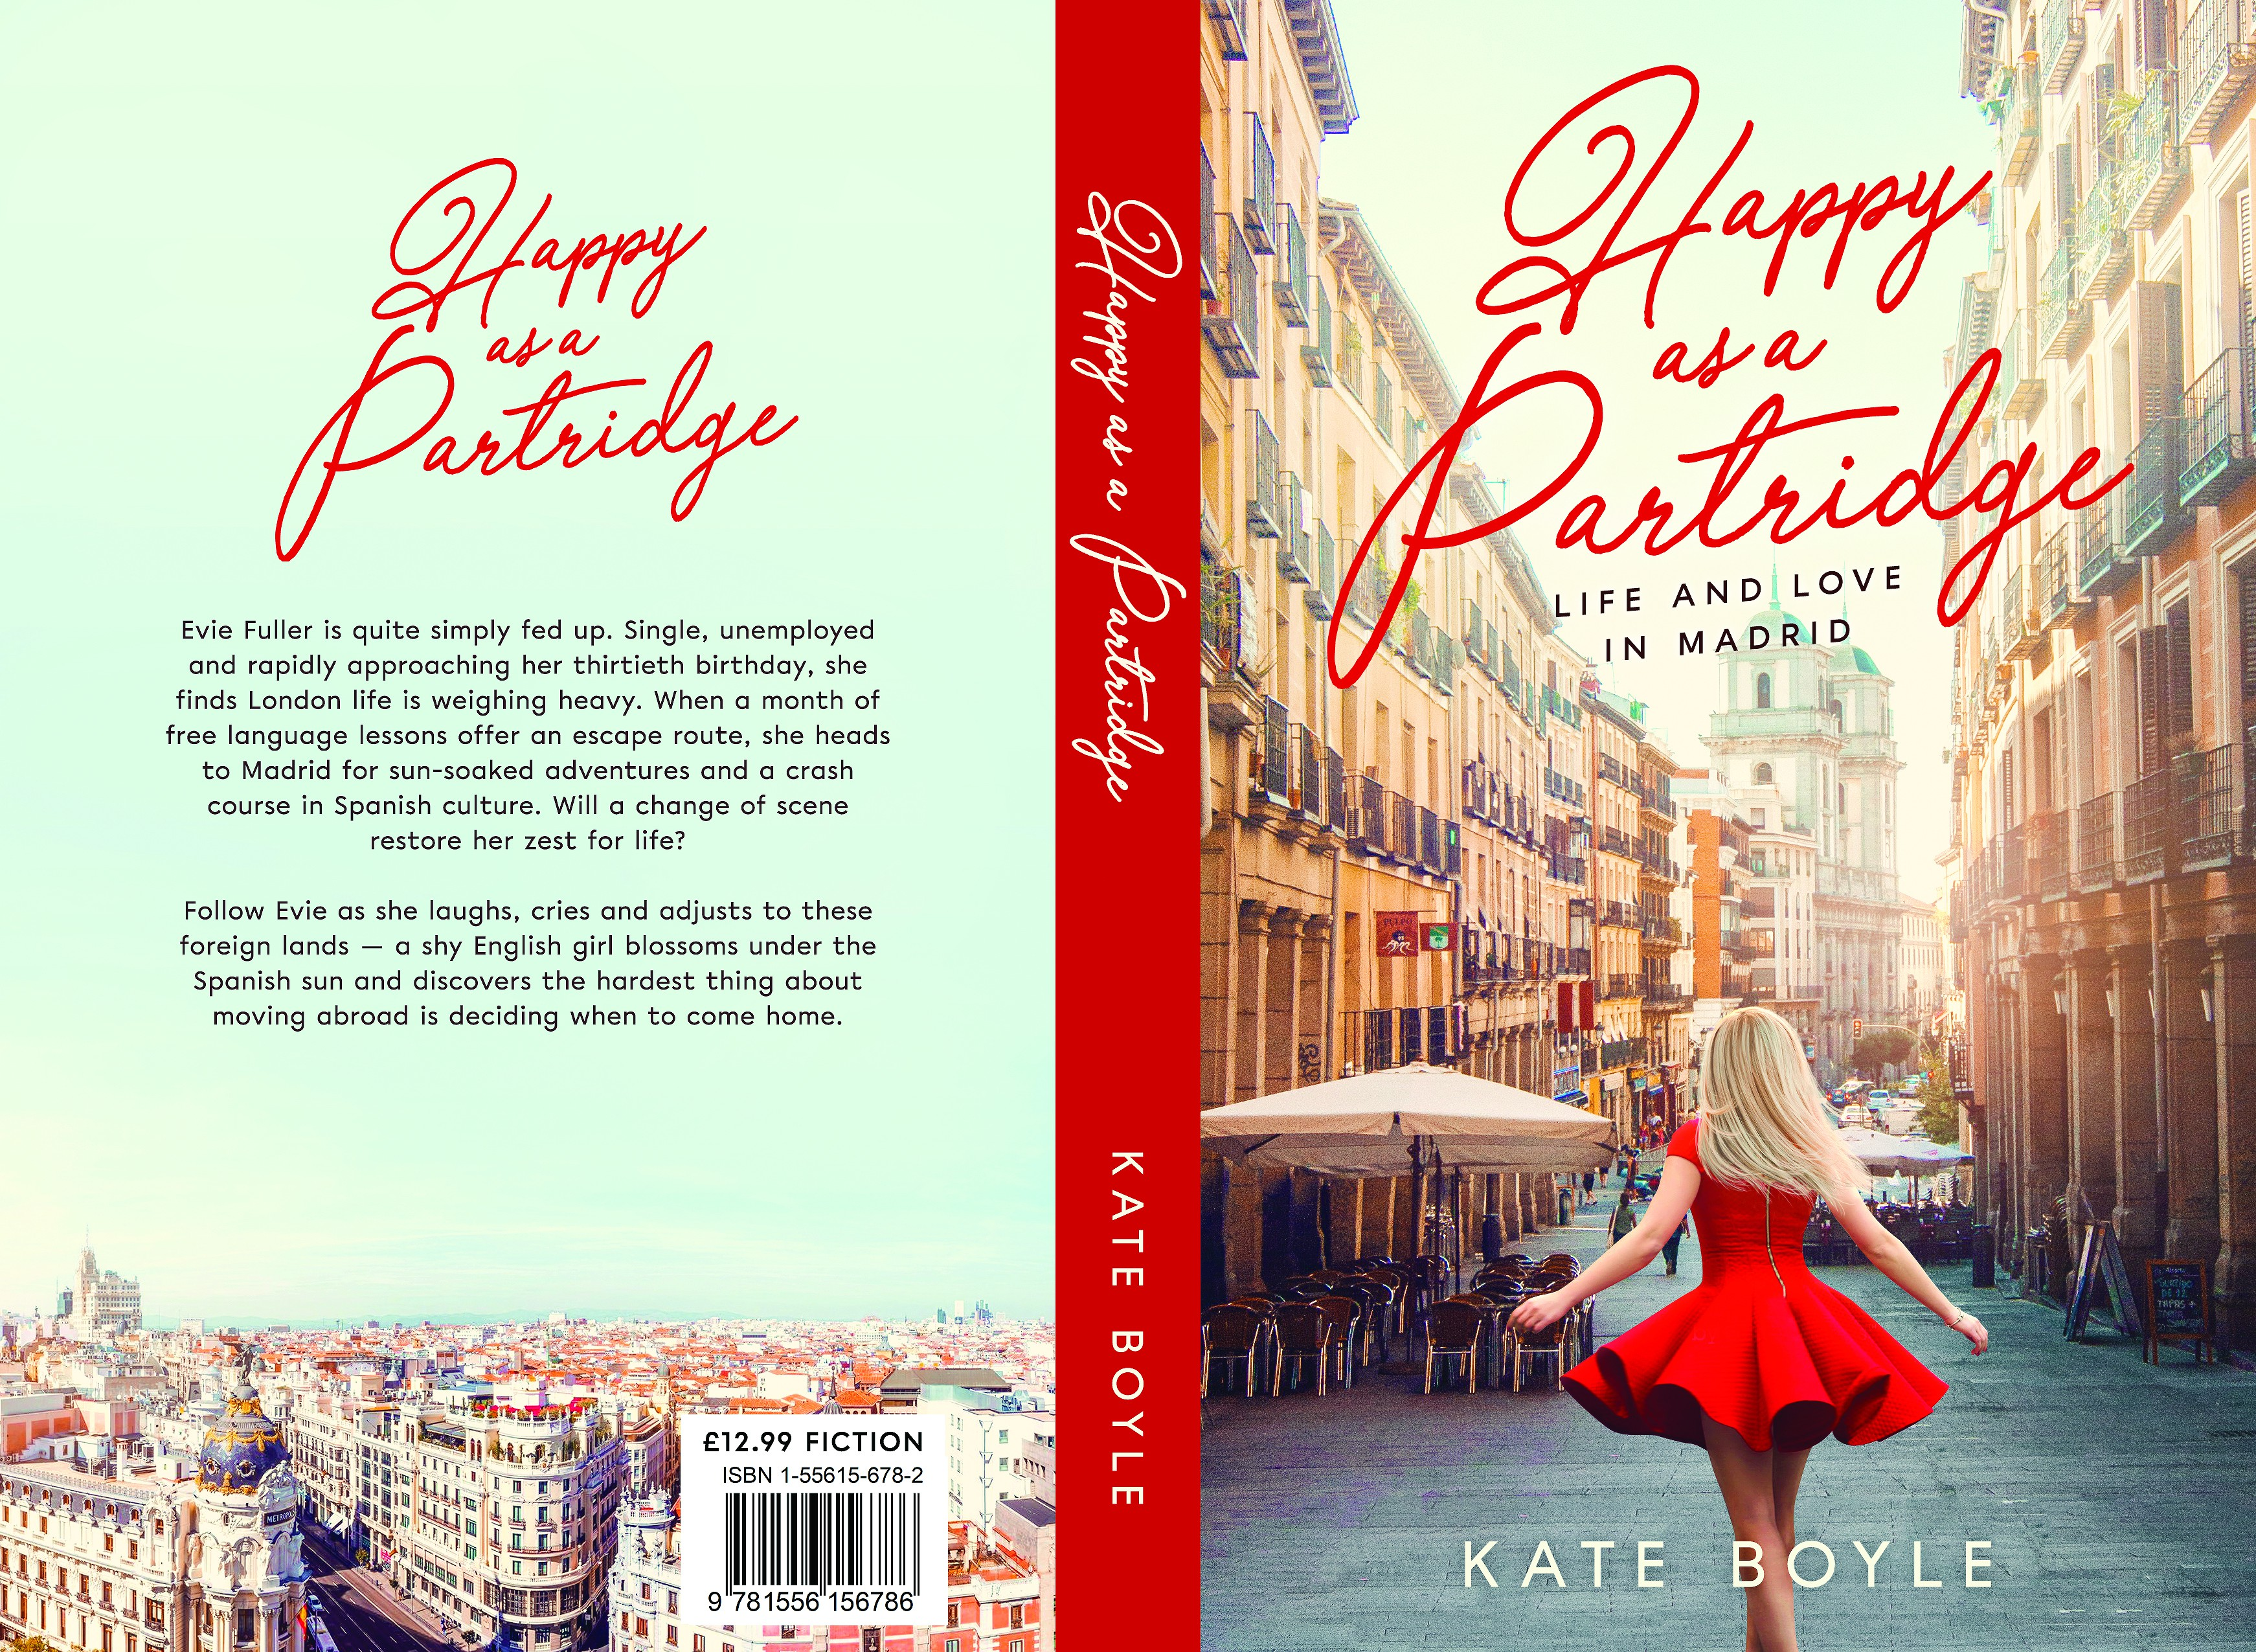 Design a book cover for a modern commercial women's novel about Spain